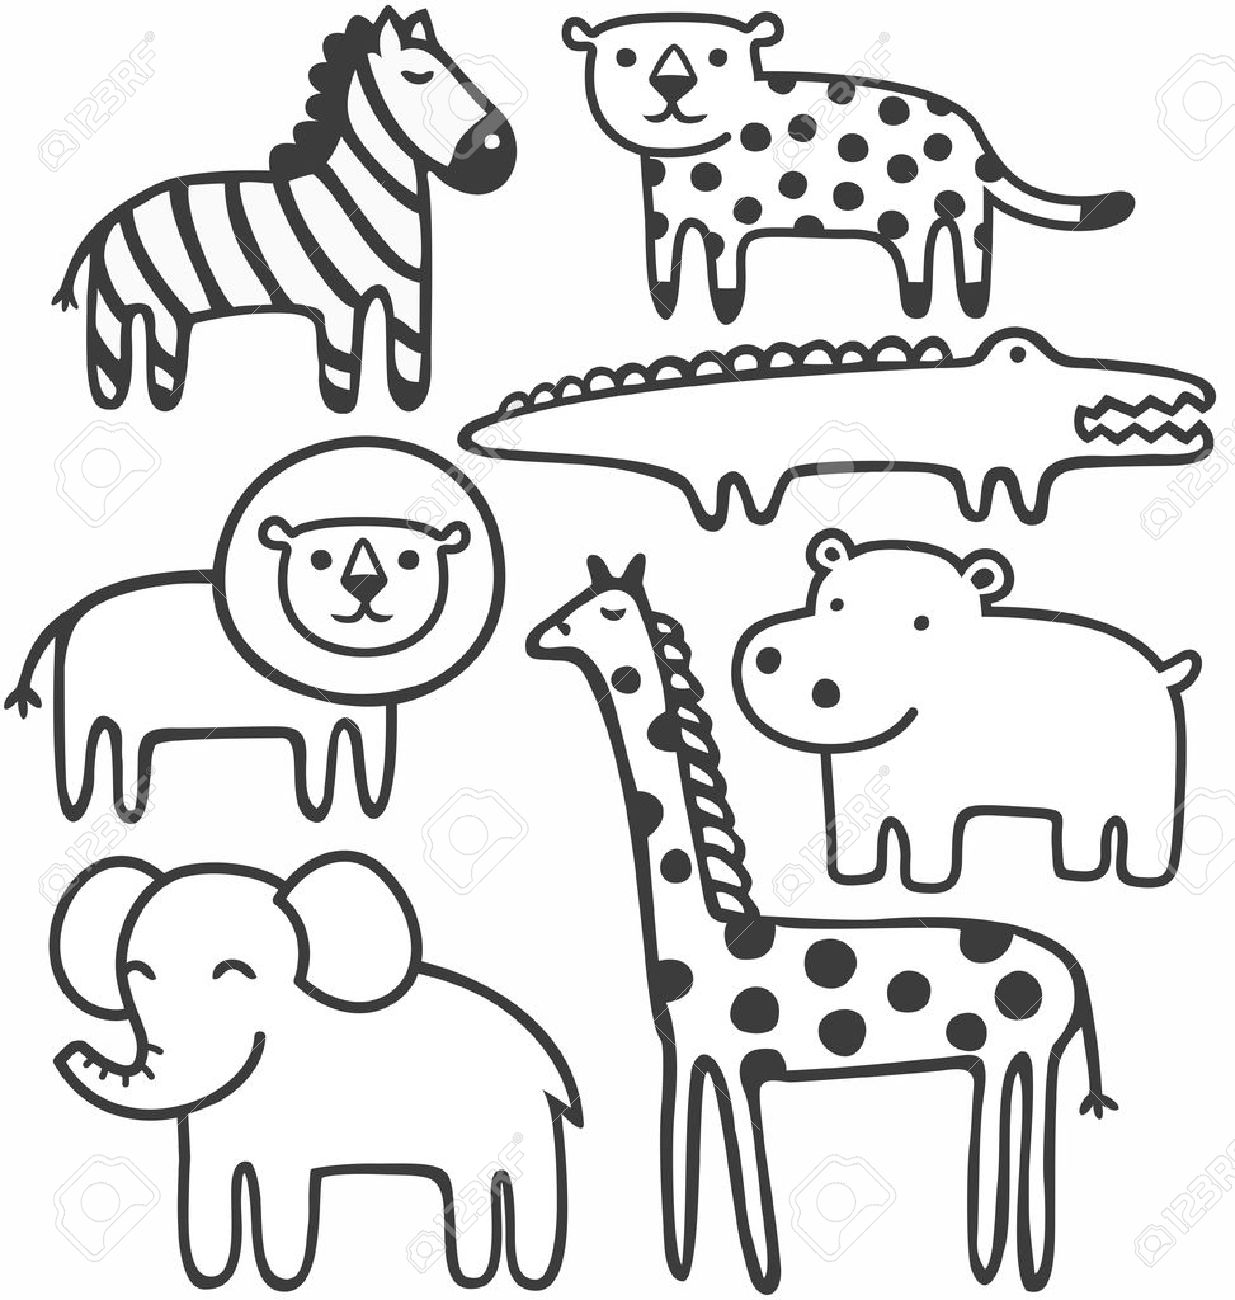 Vector wild animals in black and white vector illustration set